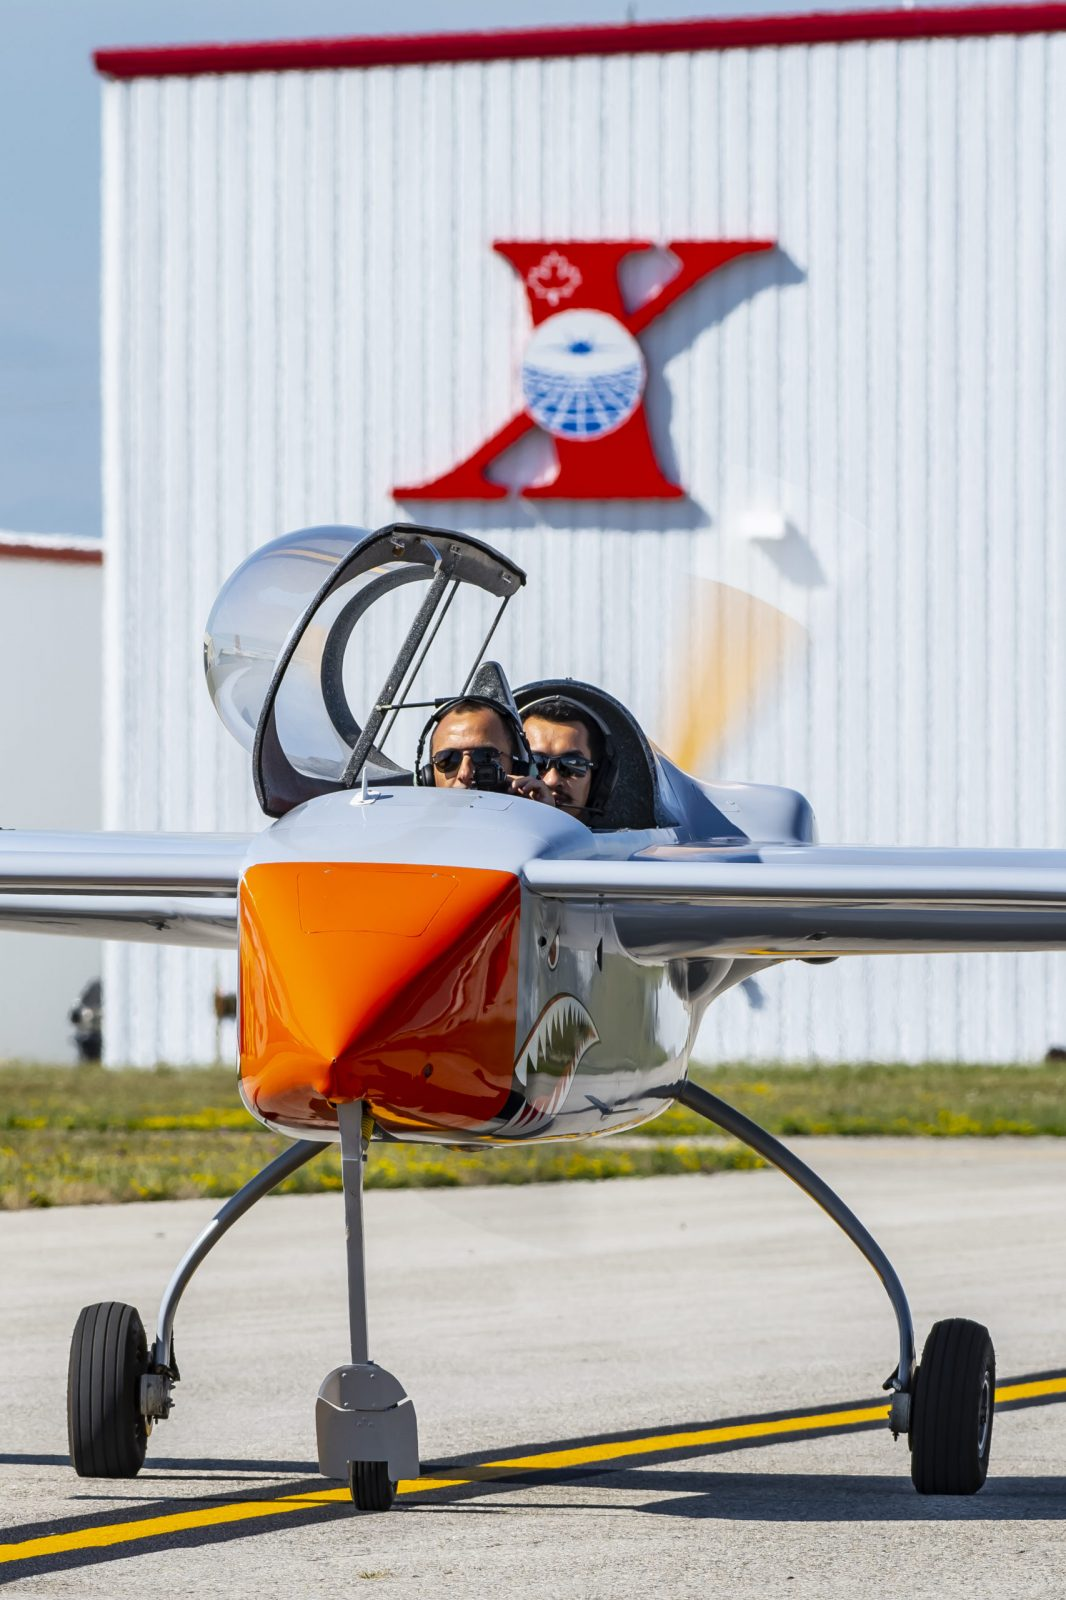 Manned remote piloted aircraft at International Test Pilots School